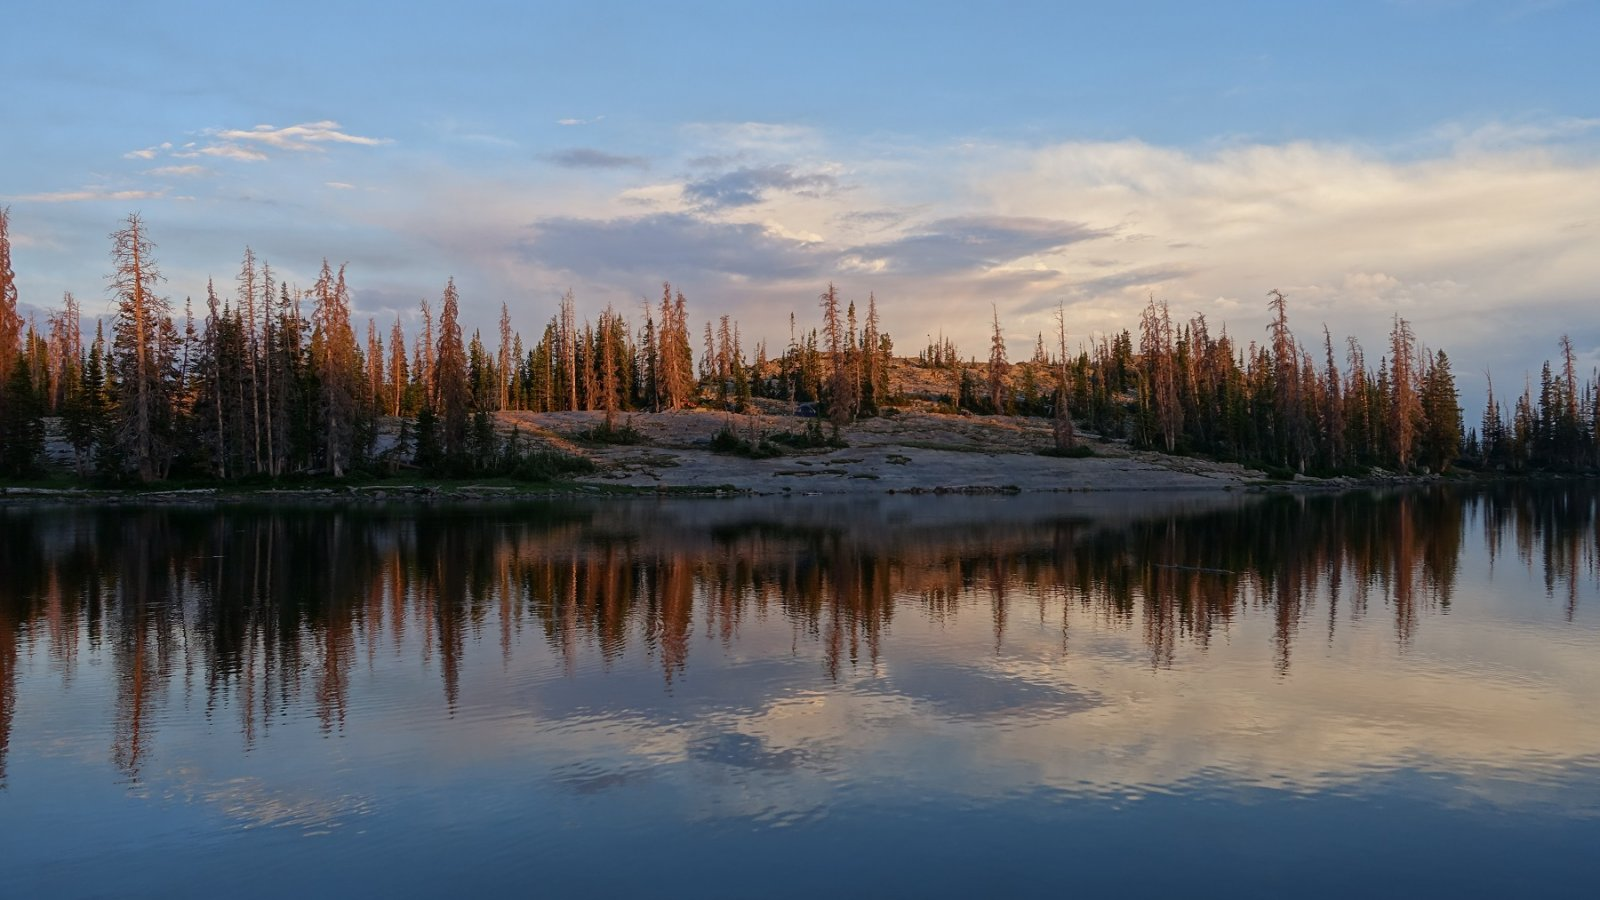 lake at sunset with pine trees